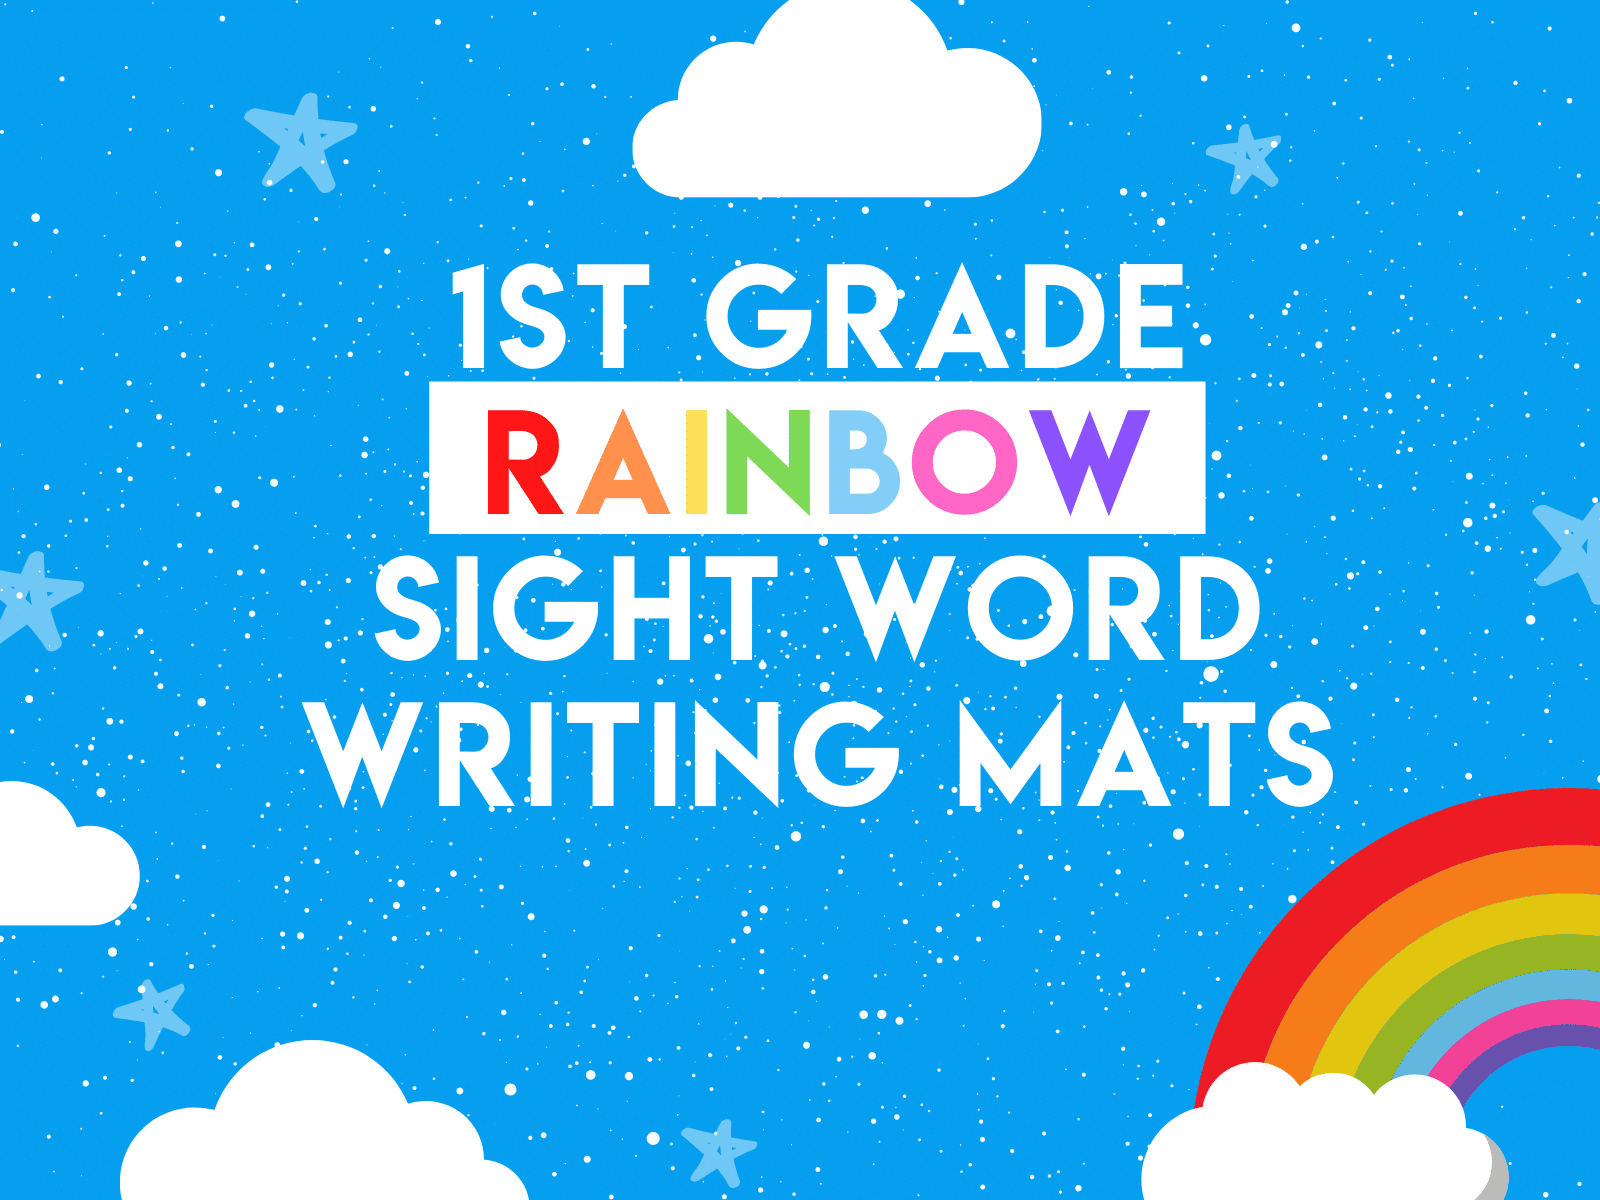 Free sight word writing mat for first graders.